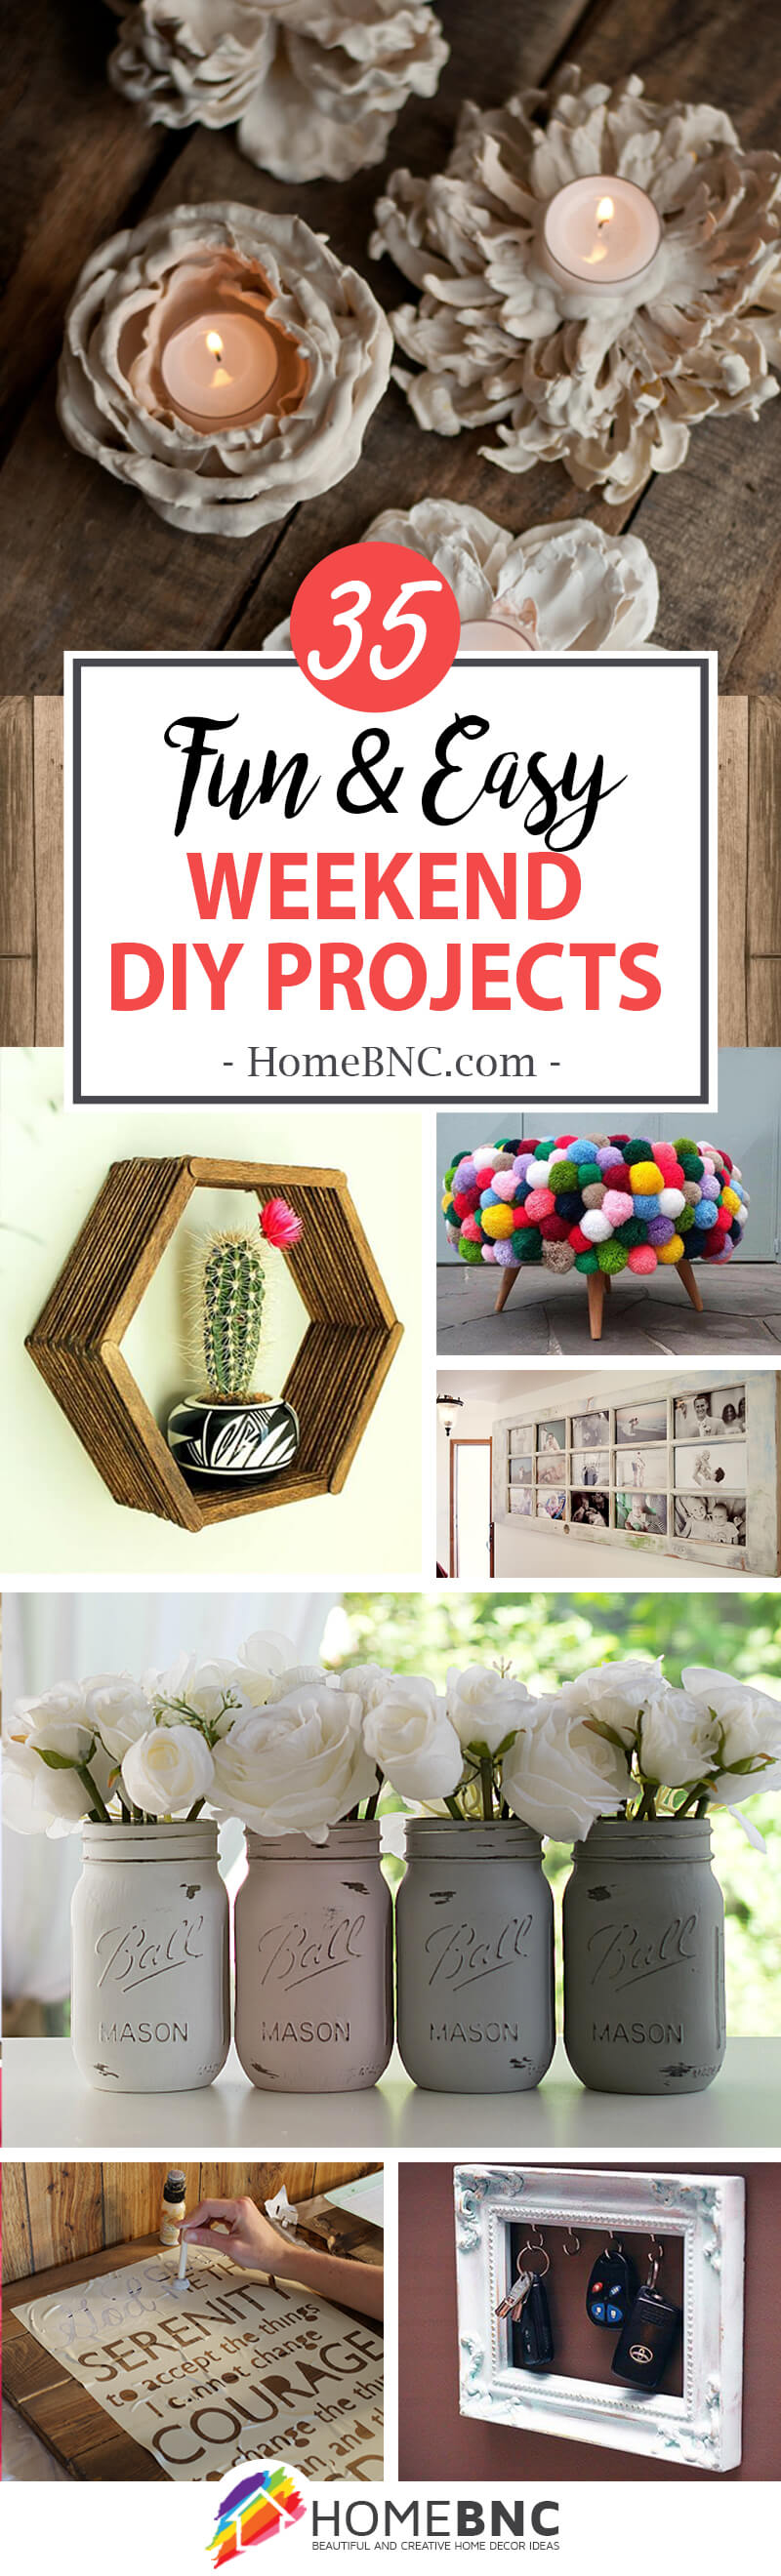 35 Exciting Weekend Diy Home Decor Projects For Making Your Own Trendy